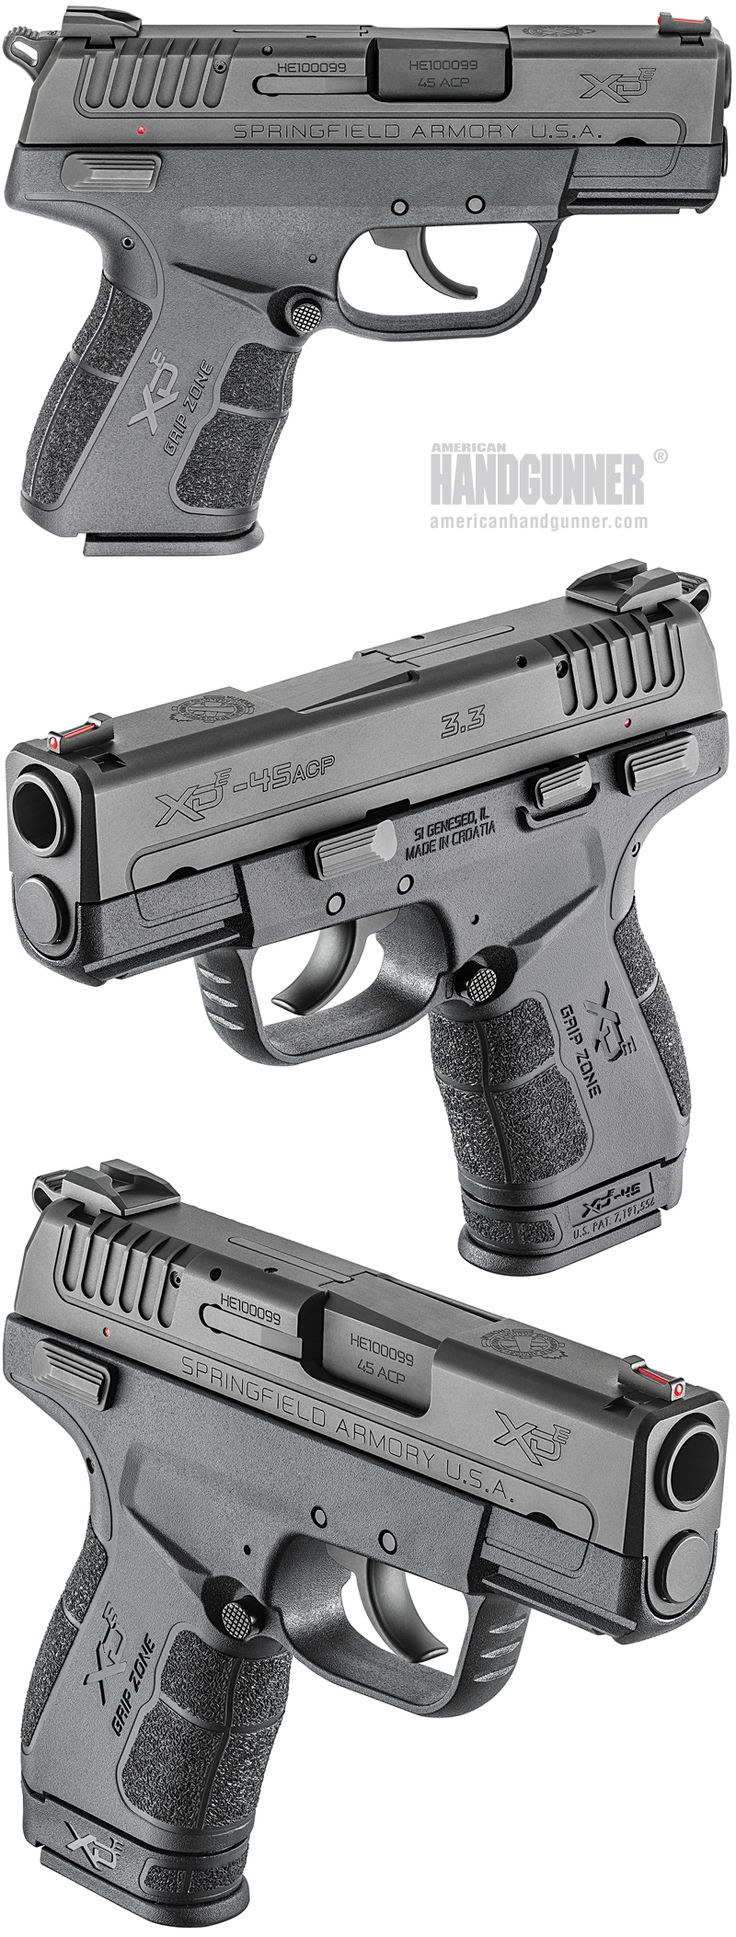 EXCLUSIVE: Springfield Armory's Bigger Hammer — The XD-E .45 ACP CCW Pistol | By Michael O. Humphries | The new Springfield Armory XD-E in .45 ACP gives fans of the DA/SA trigger system a pistol that packs a very big punch in a small package. | © American Handgunner 2017